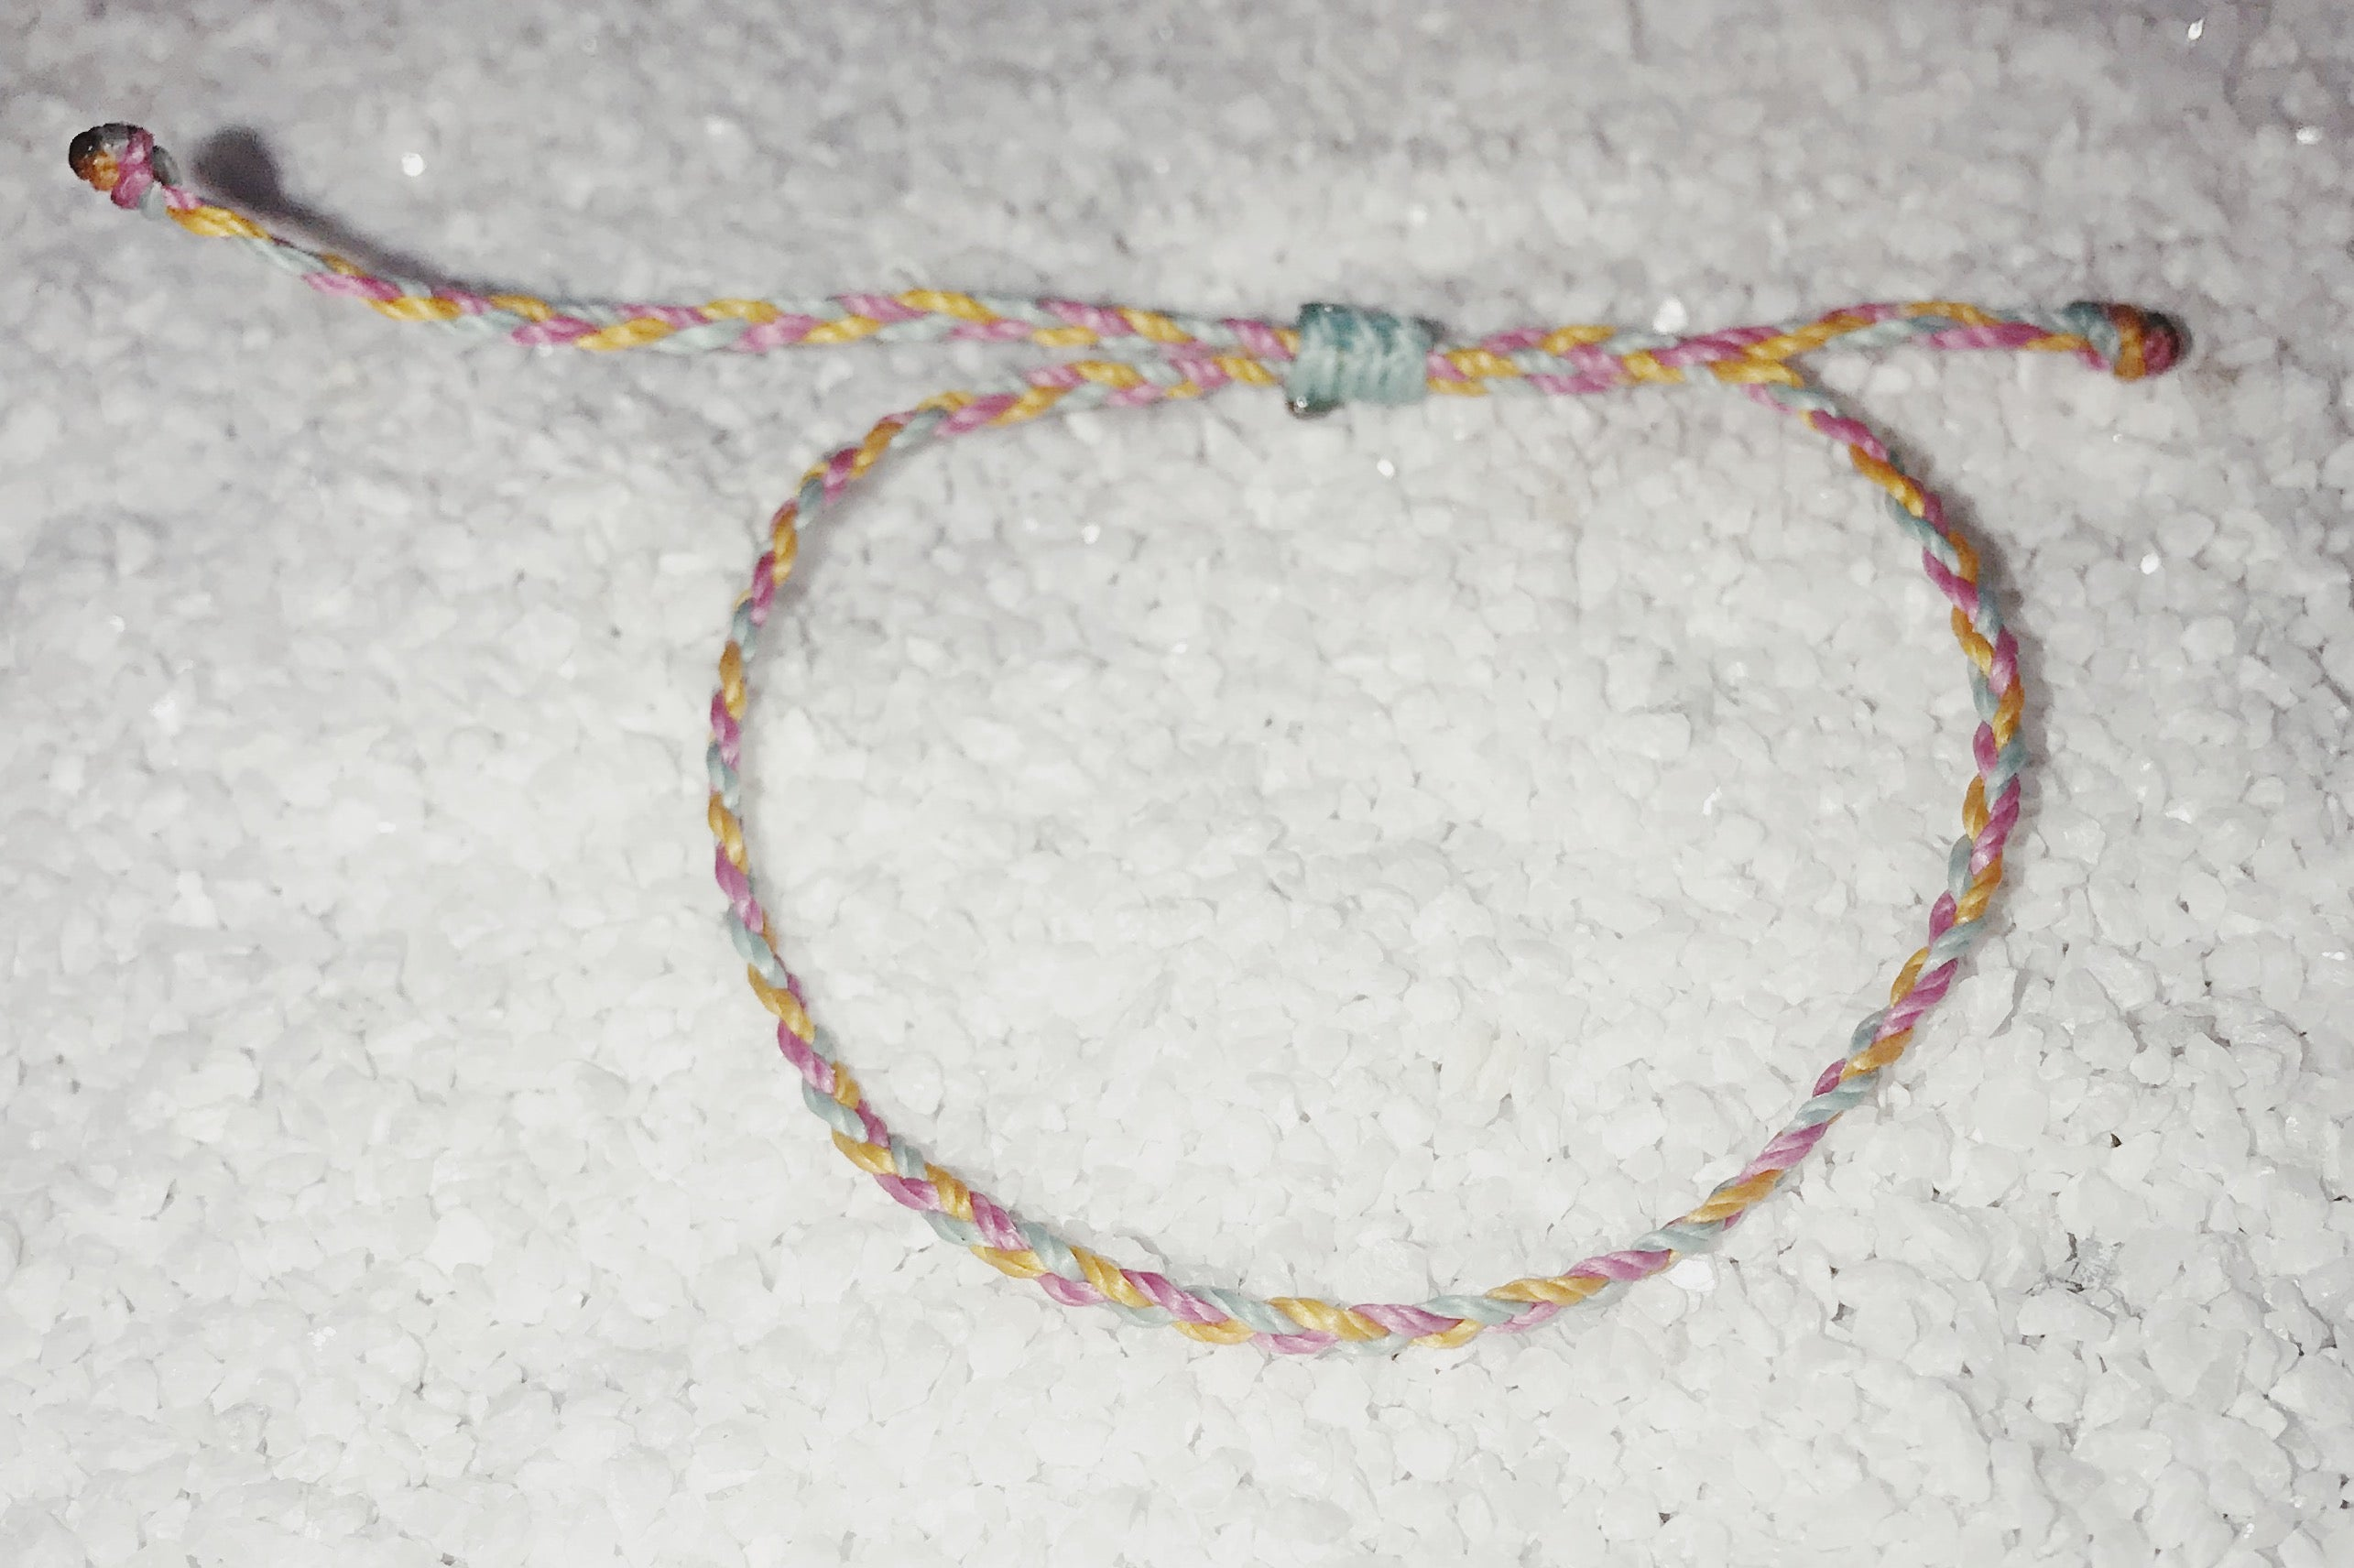 Friendship Bracelet - Pink, Yellow, White